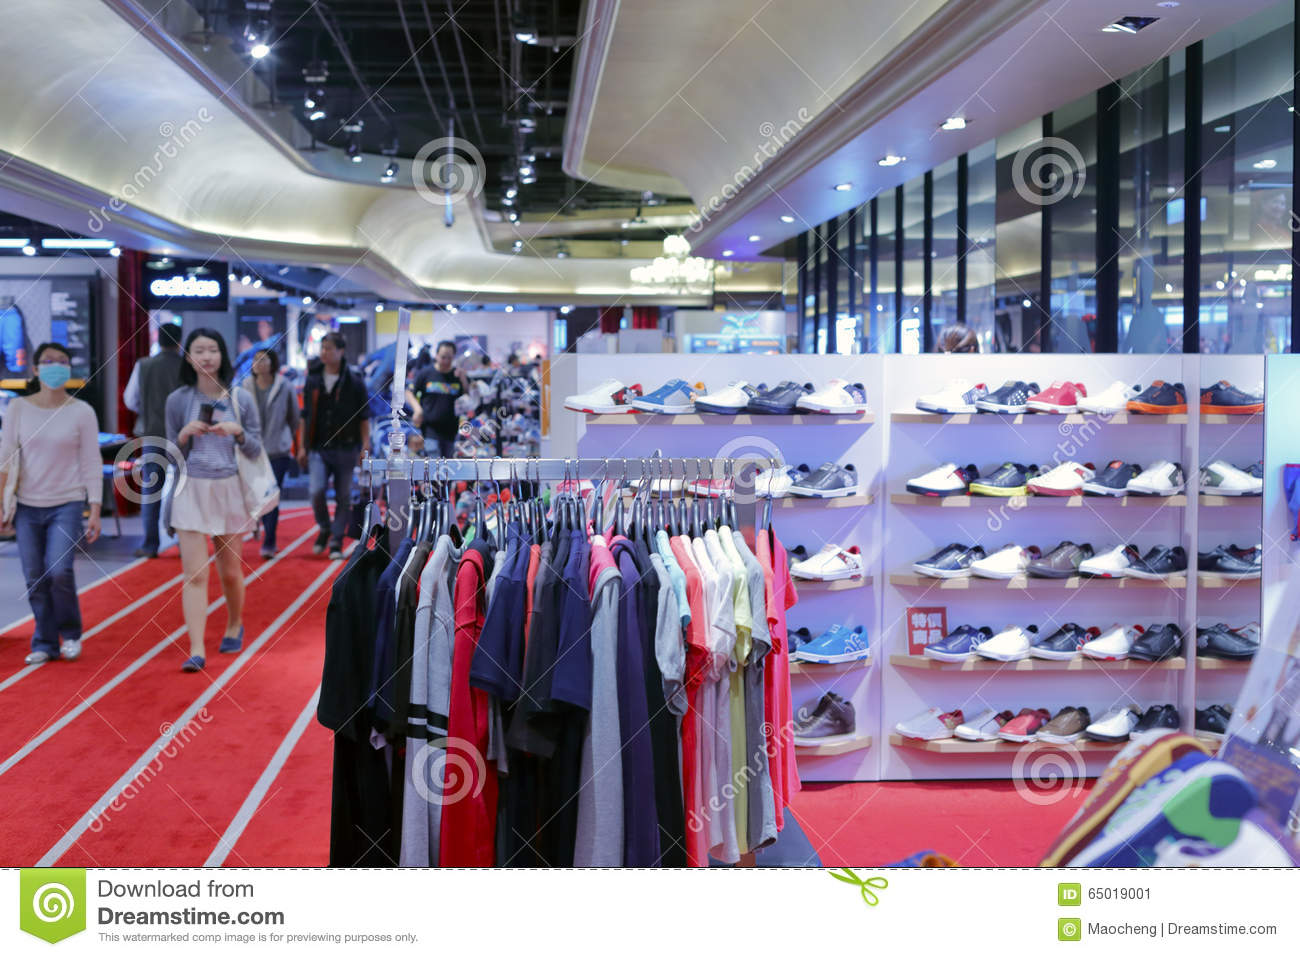 8890daa8ba6 Taipei sport clothing shop editorial photo. Image of fashion - 65019001